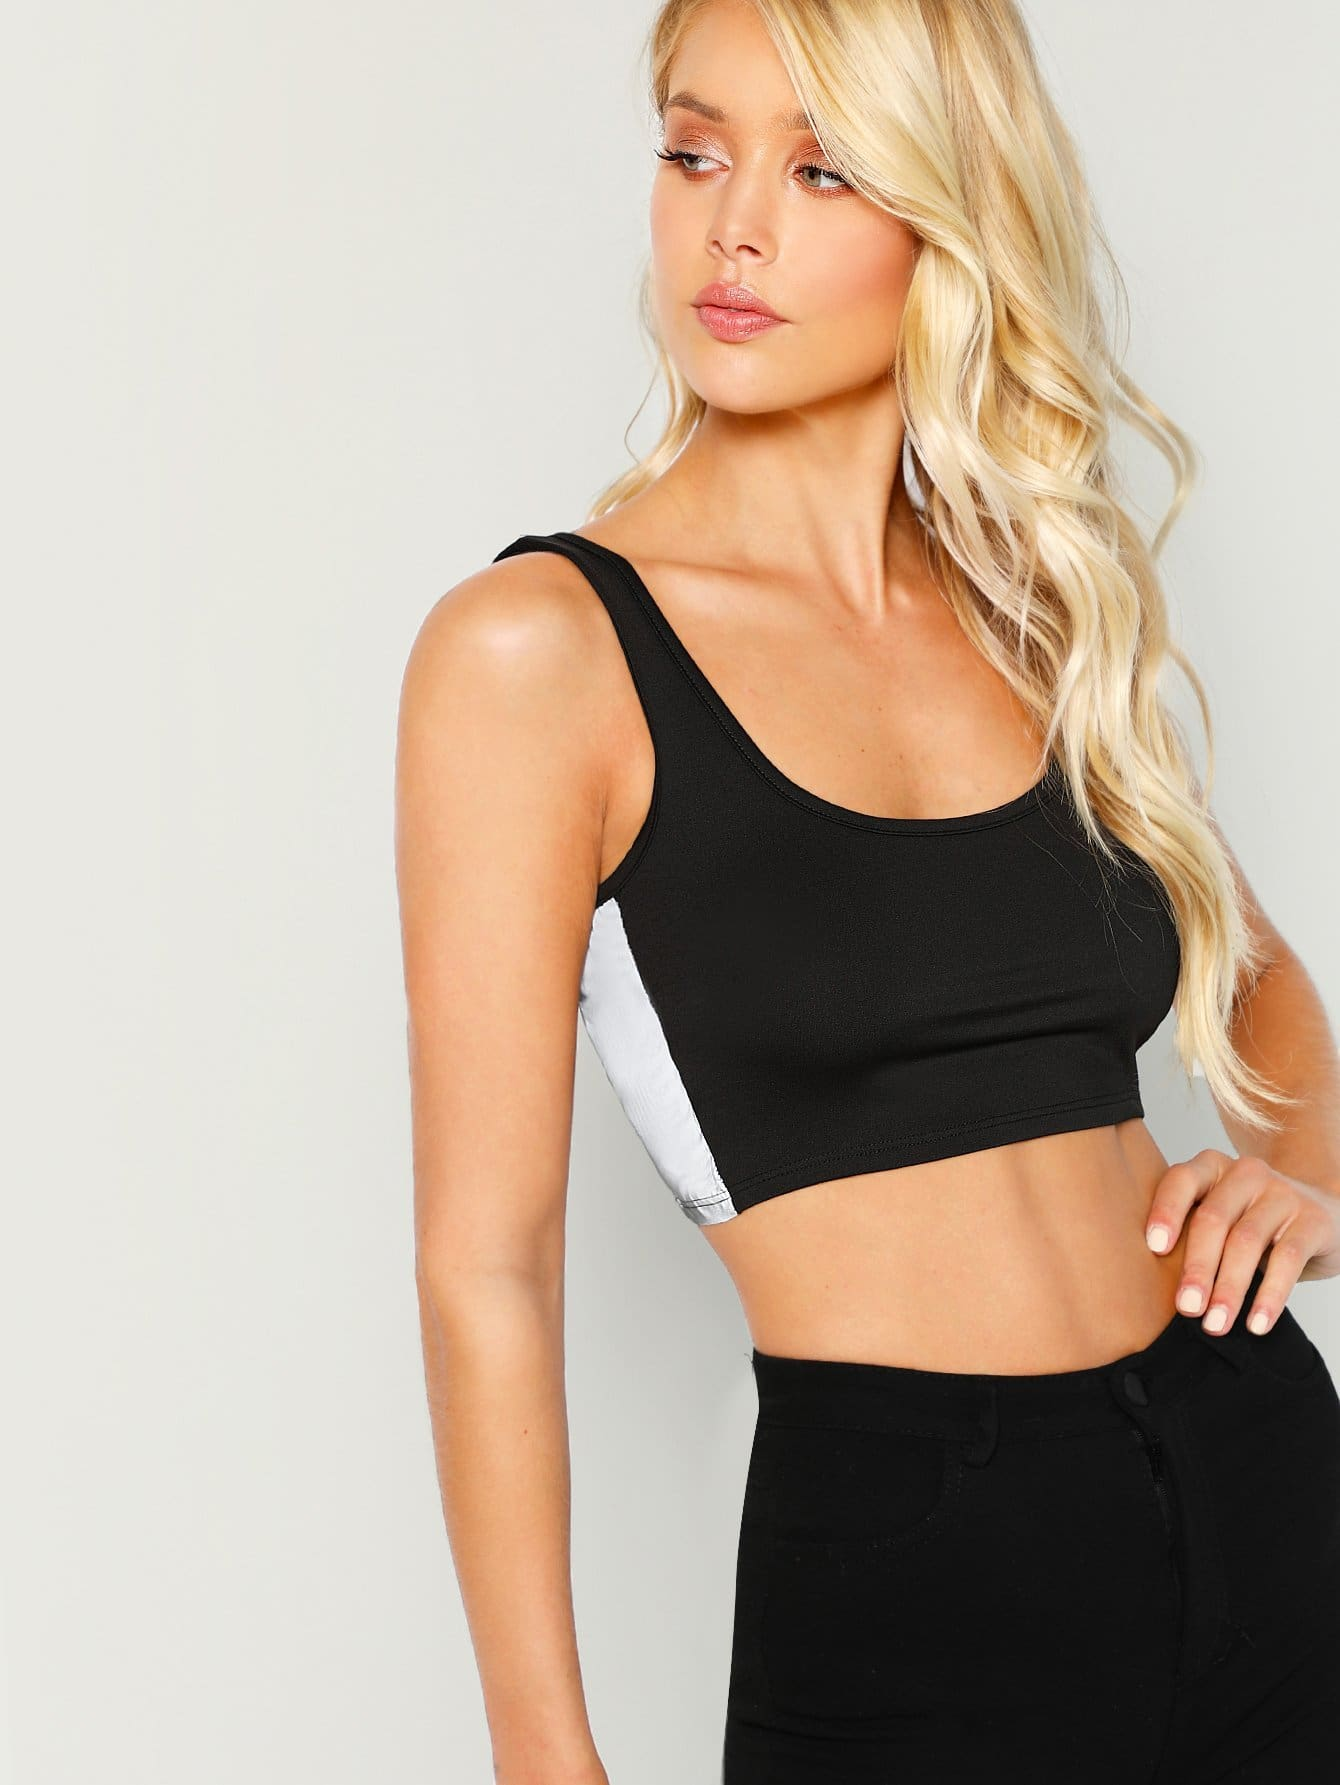 Reflective Side Stripe Crop Top - Sport Bras